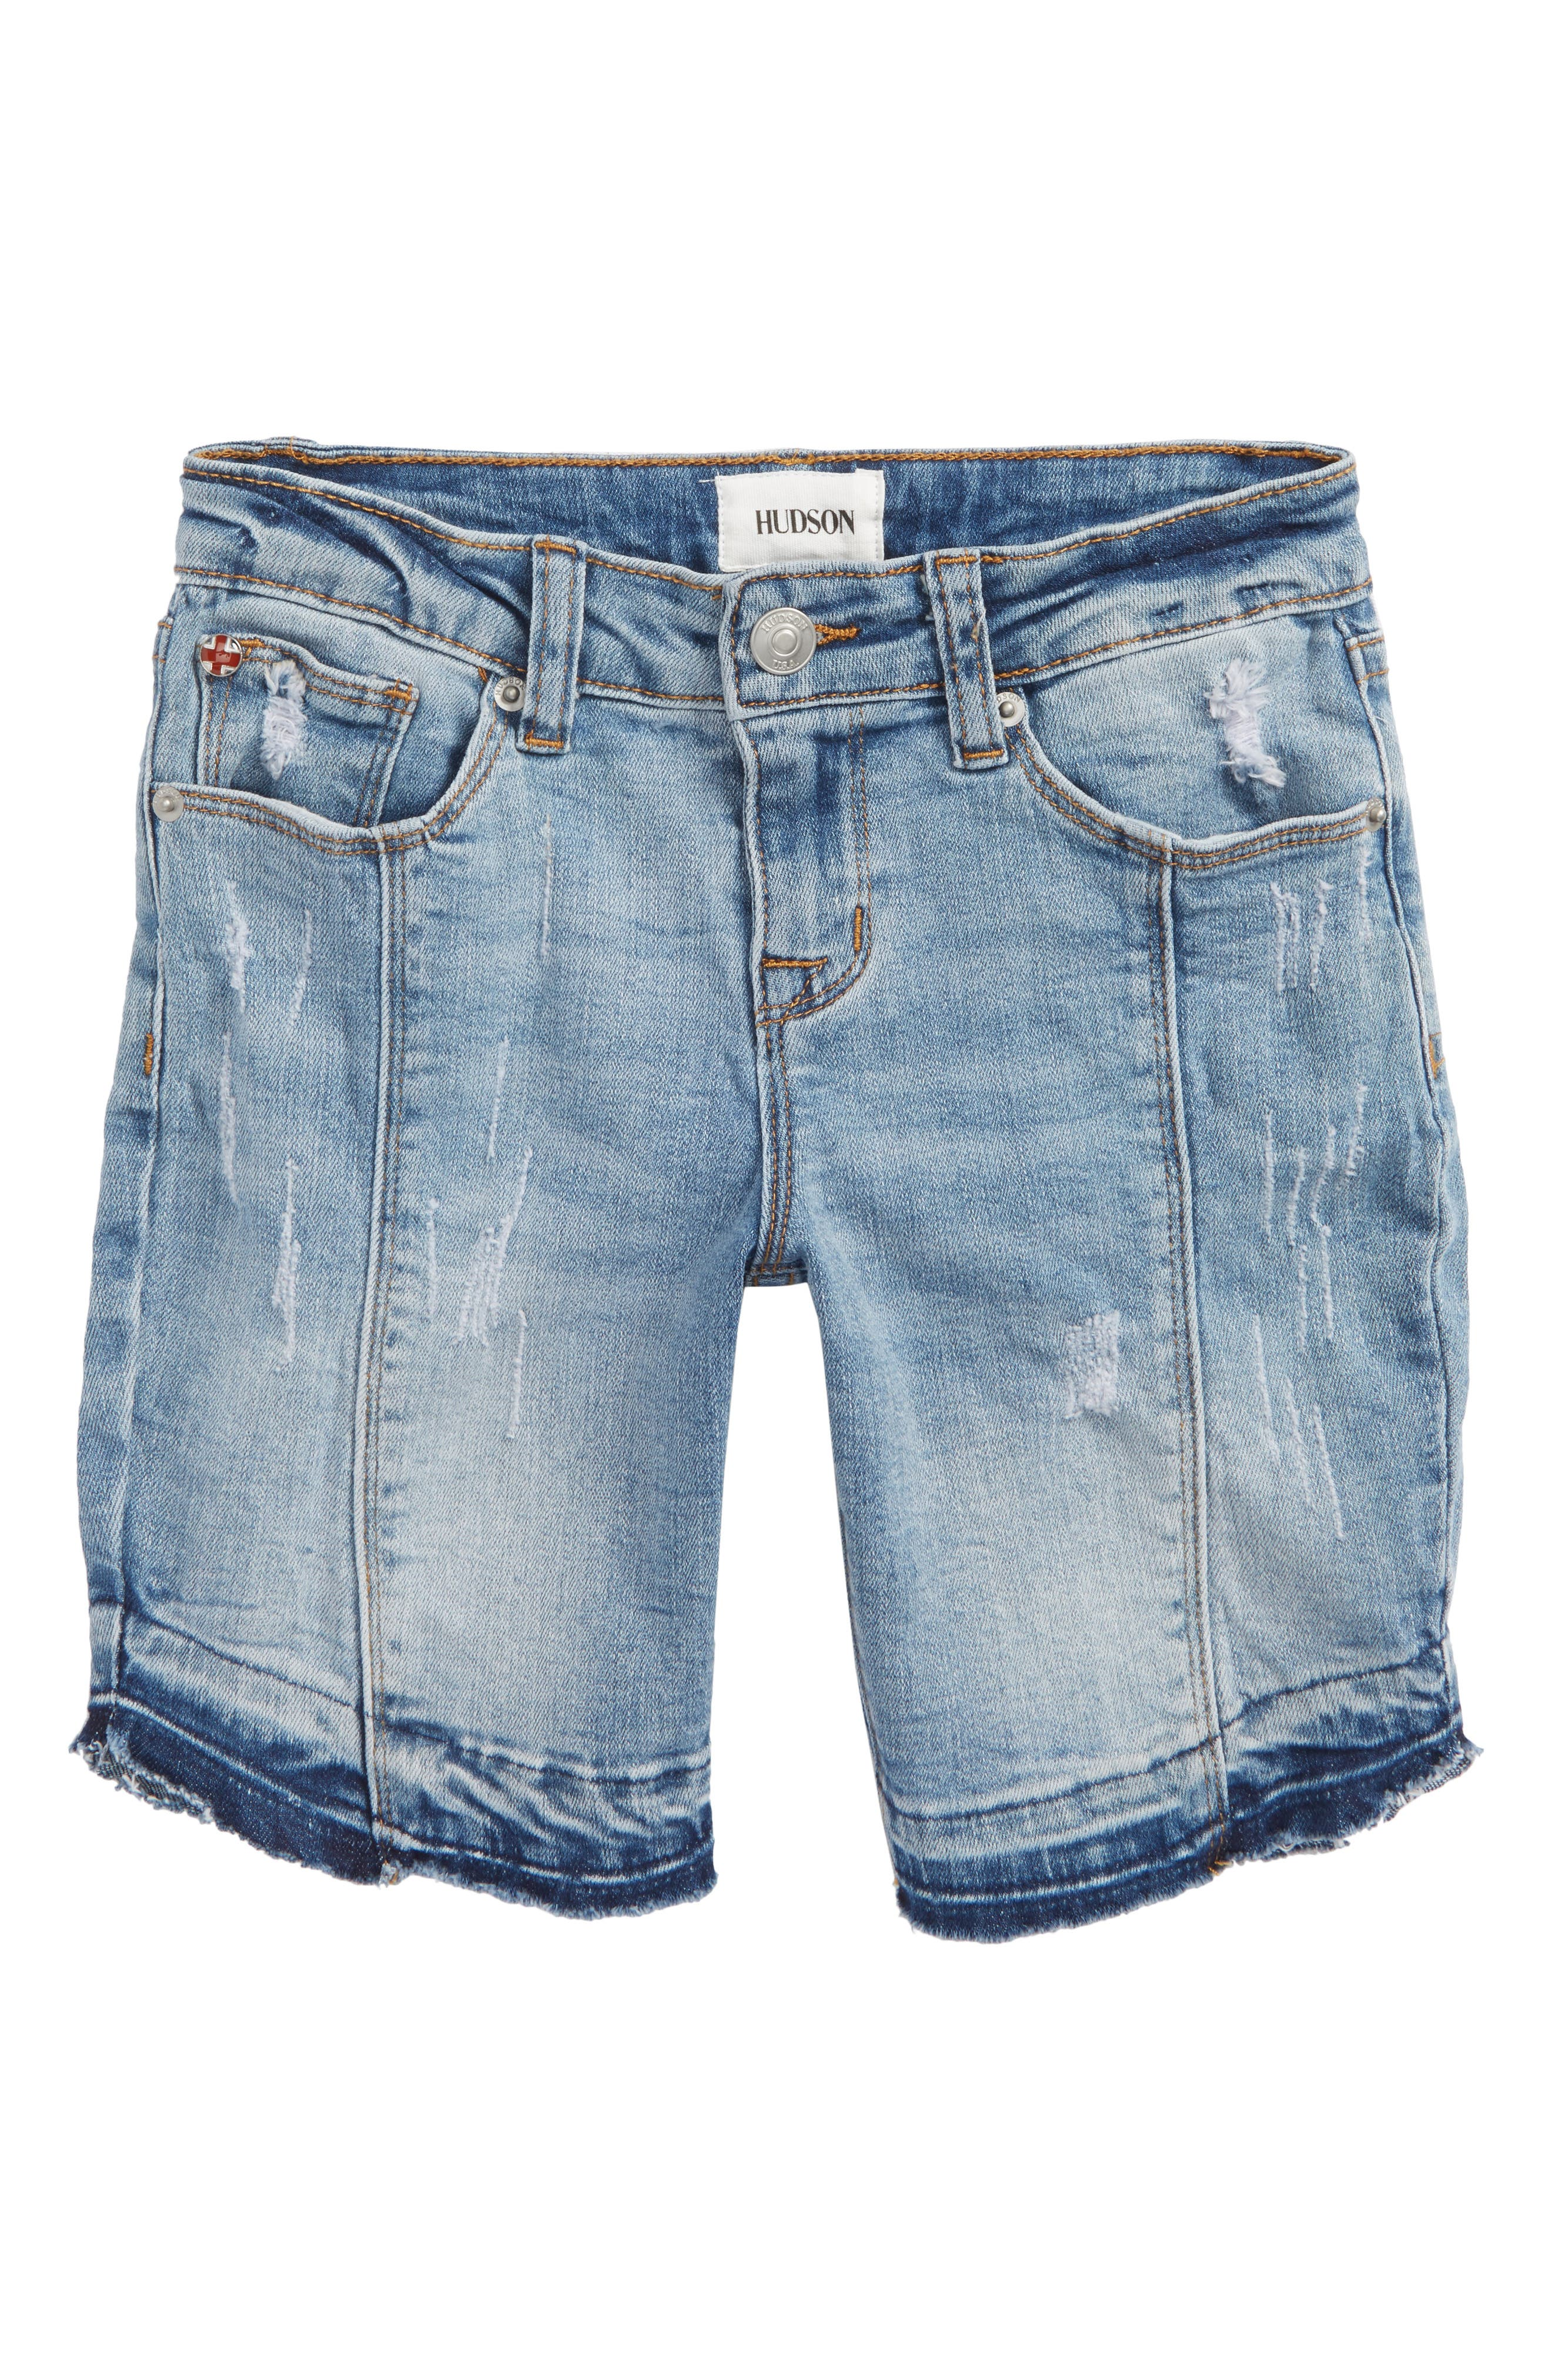 Release Hem Distressed Denim Shorts,                         Main,                         color,